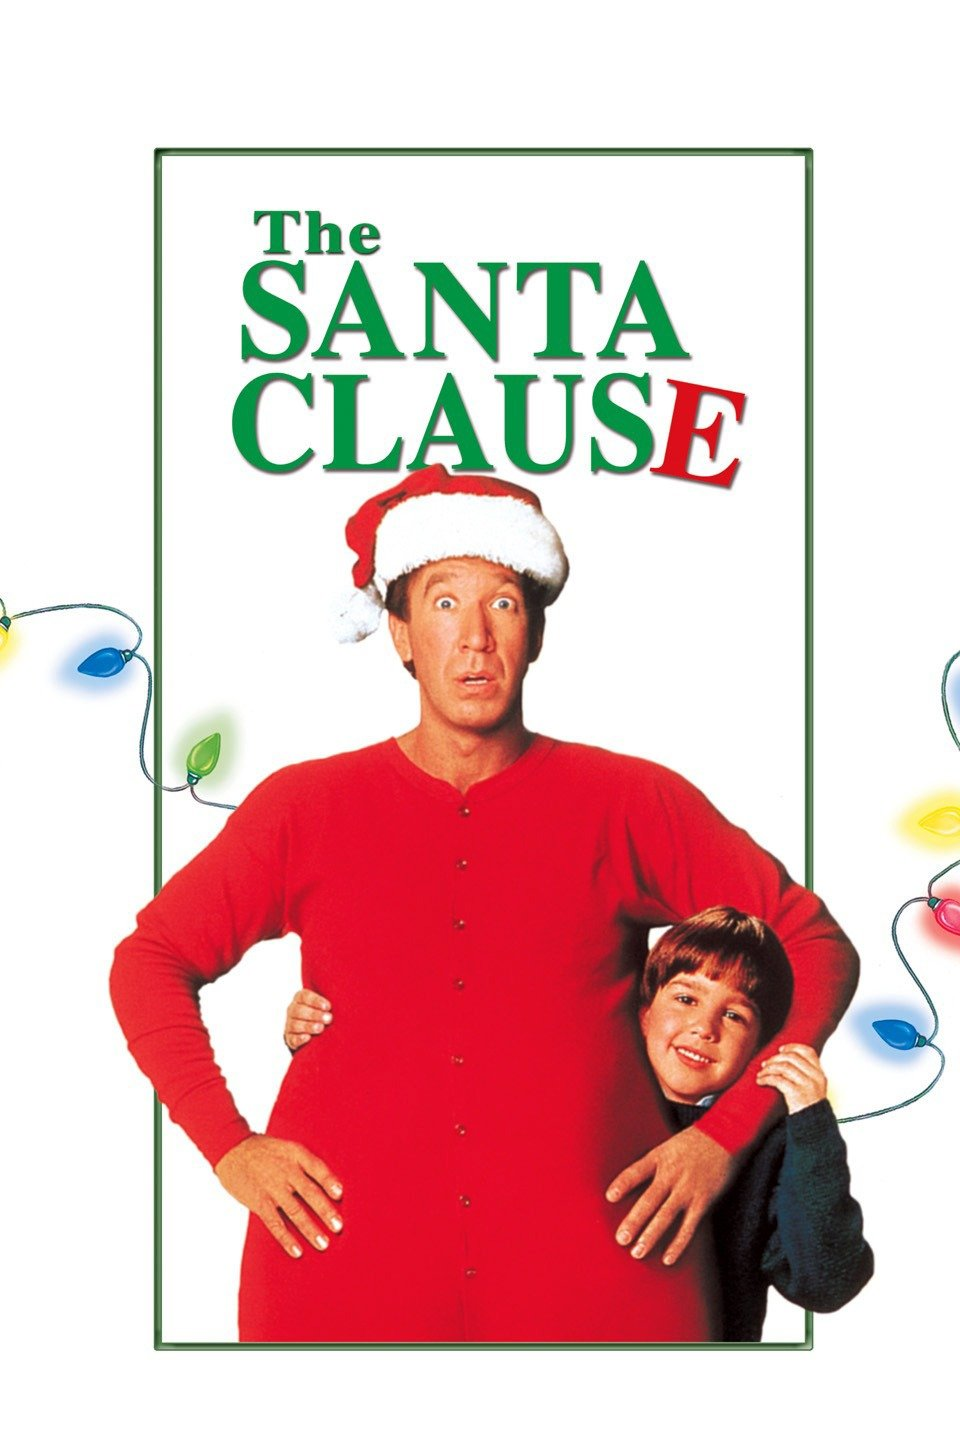 The Santa Clause - This one crept up on us and has now become one of our must watches. Tim Allen is spot on as the non-believer who has to step into Santa's shoes and save Christmas. The Santa Clause will make you smile and laugh and remind you that maybe there's a little Santa in us all. After all if the Santa Suit fits…. wear it (and there's your excuse for those extra Christmas pounds.)